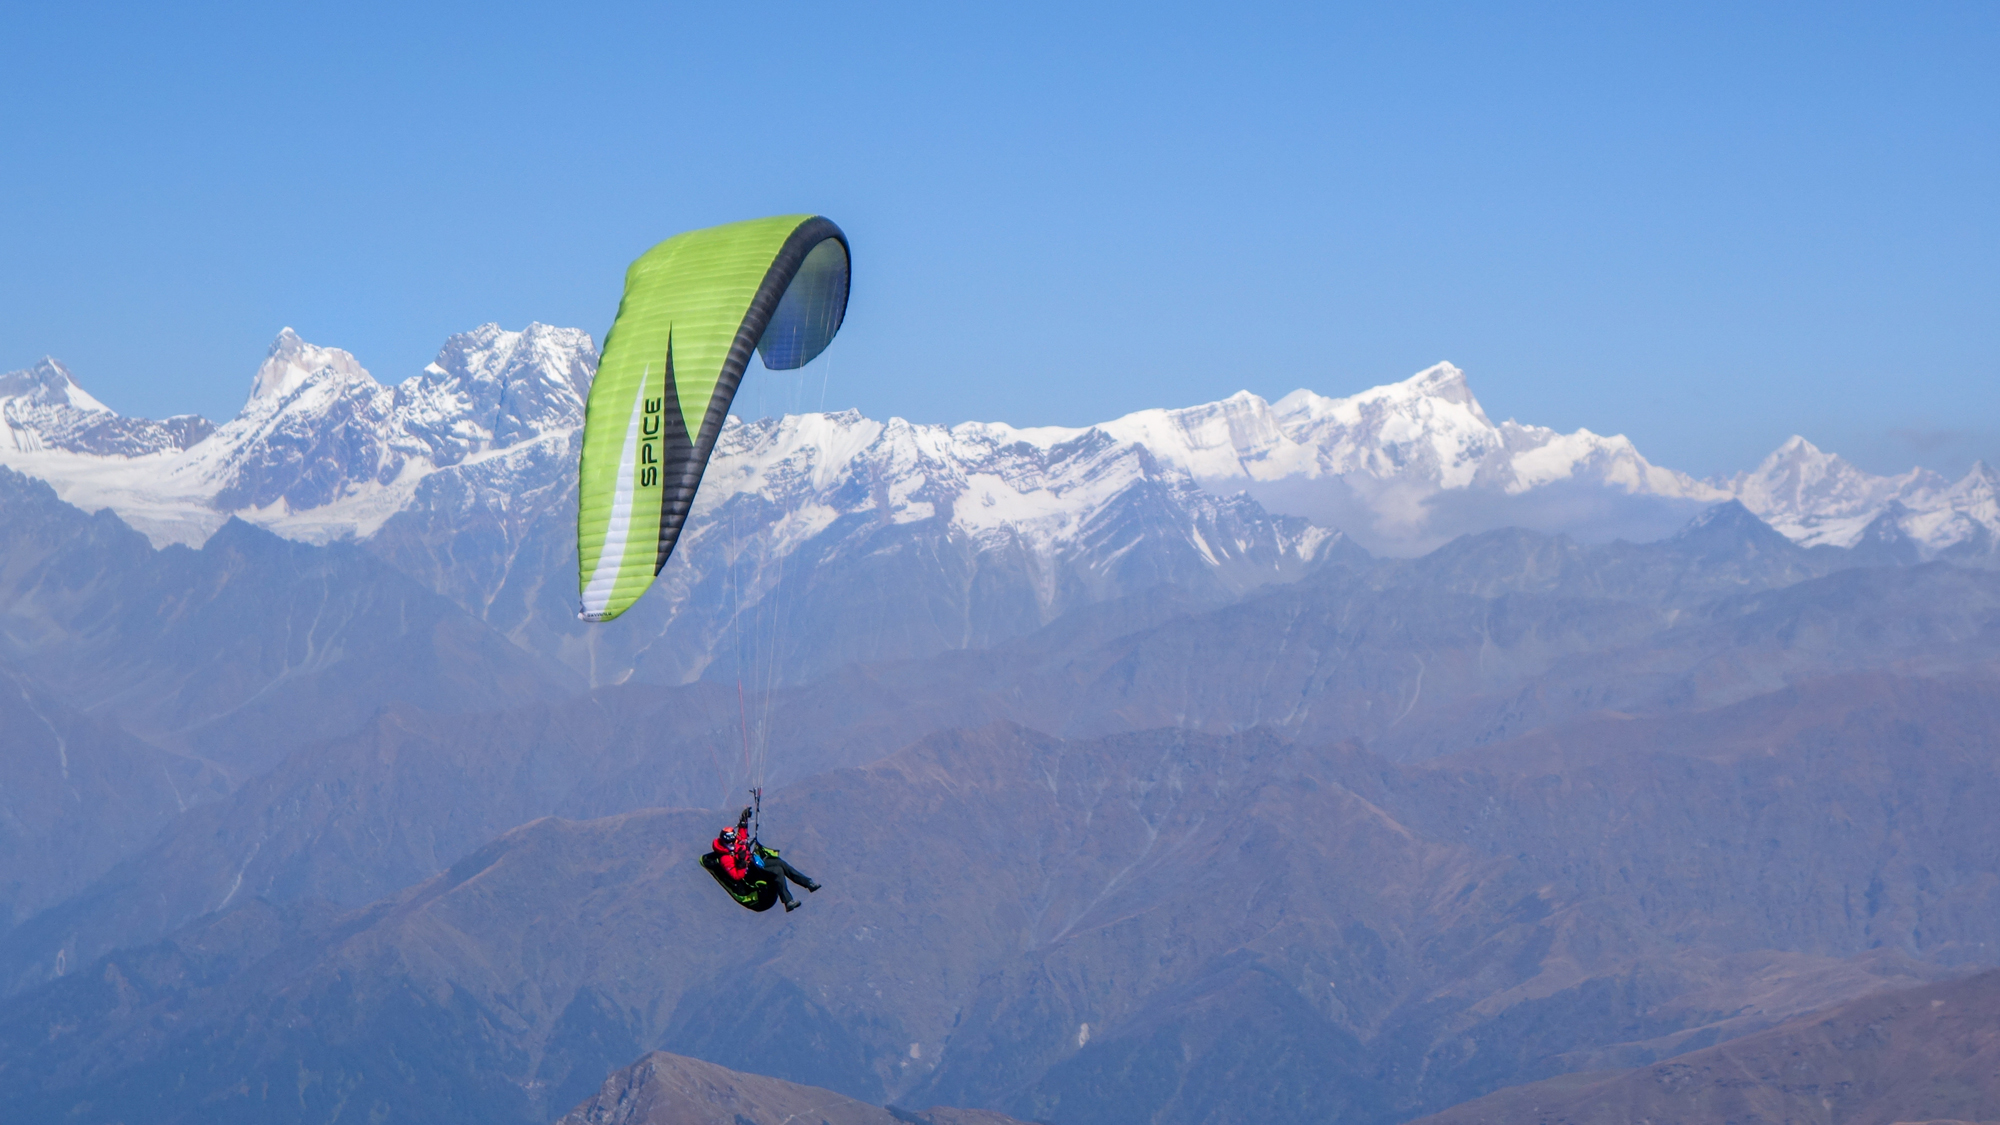 Loraine Humeau inde The Himalayan Paragliding Line (1 of 1)-11